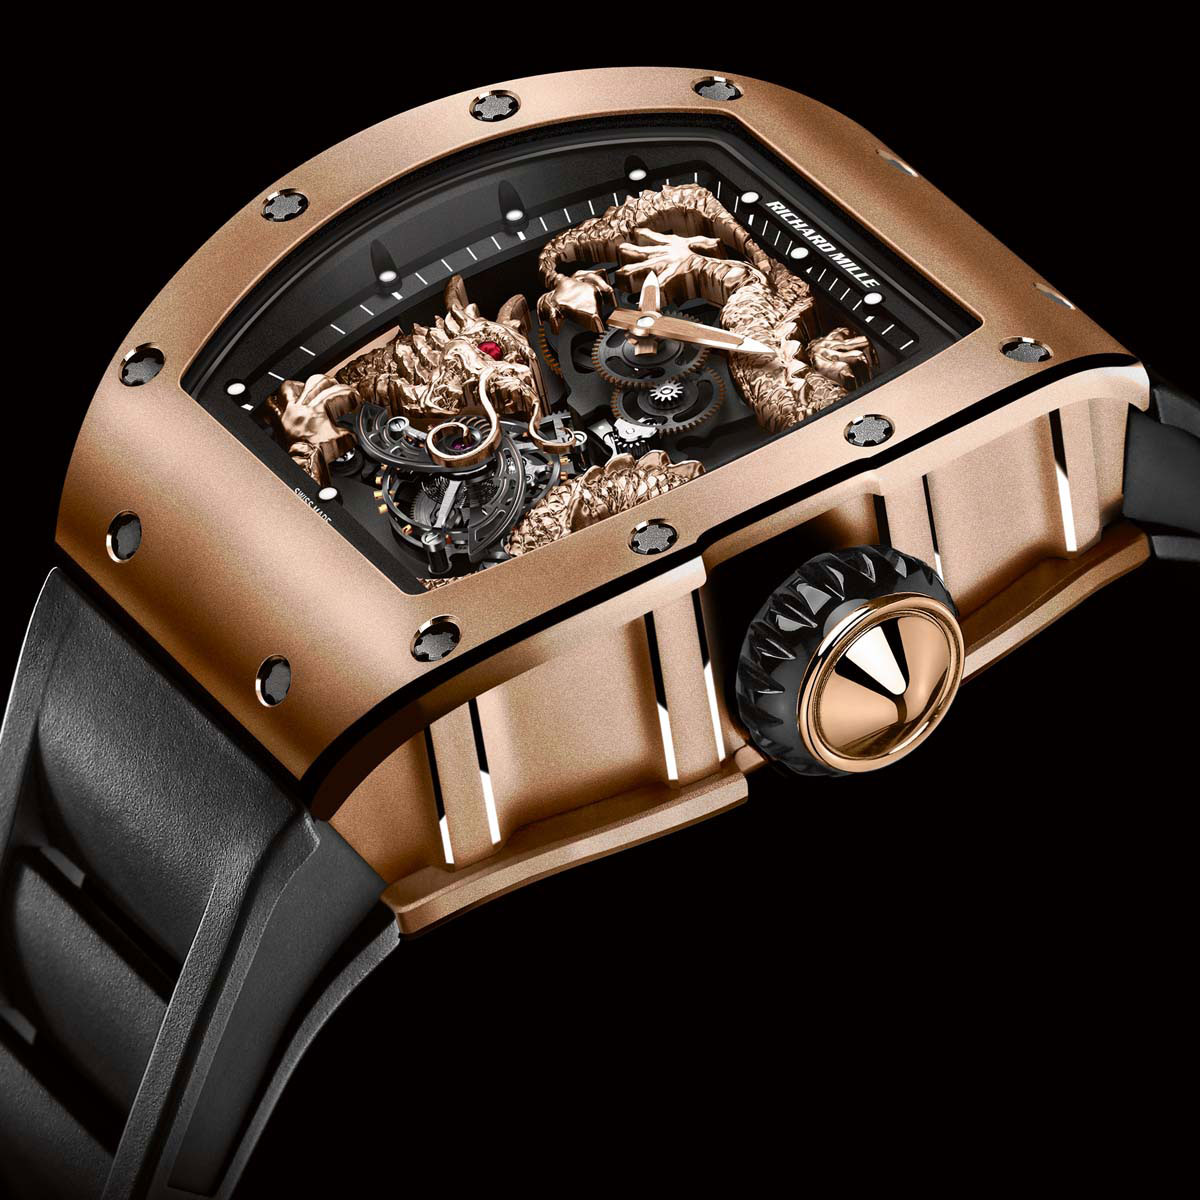 Limited Edition Richard Mille Rm 057 Dragon Jackie Chan